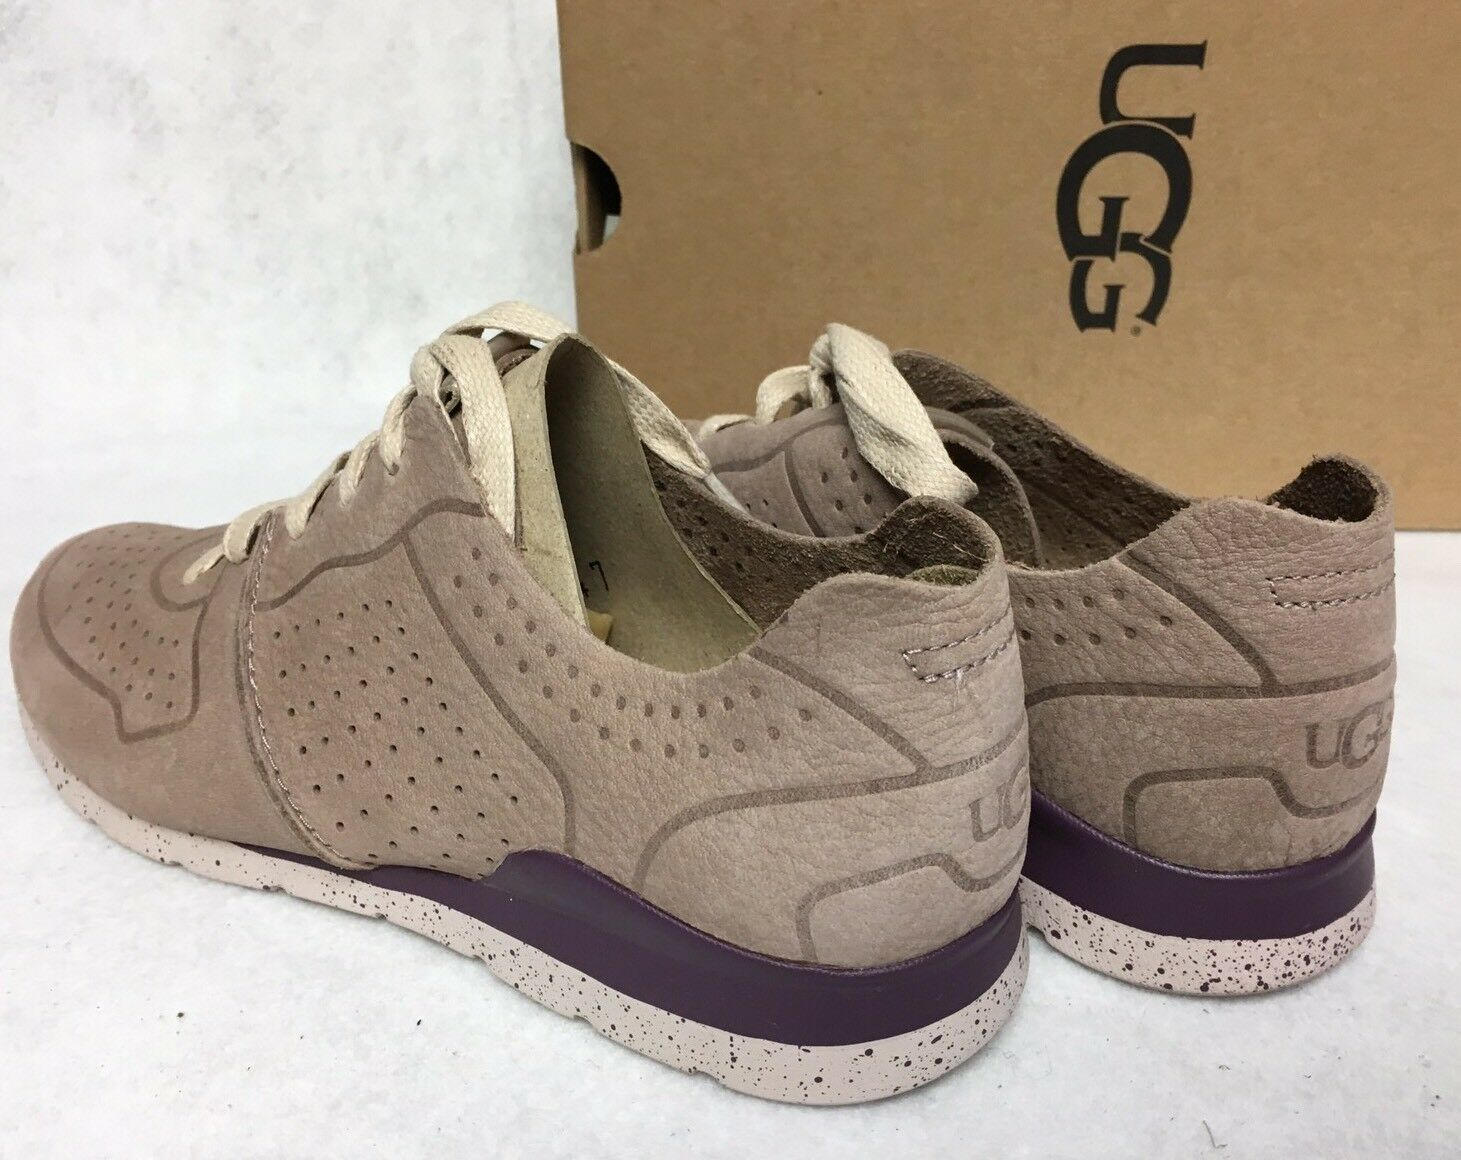 UGG Australia Tye Lace Up Leather Perforated Fashion Sneakers 1019057 Dusk image 9